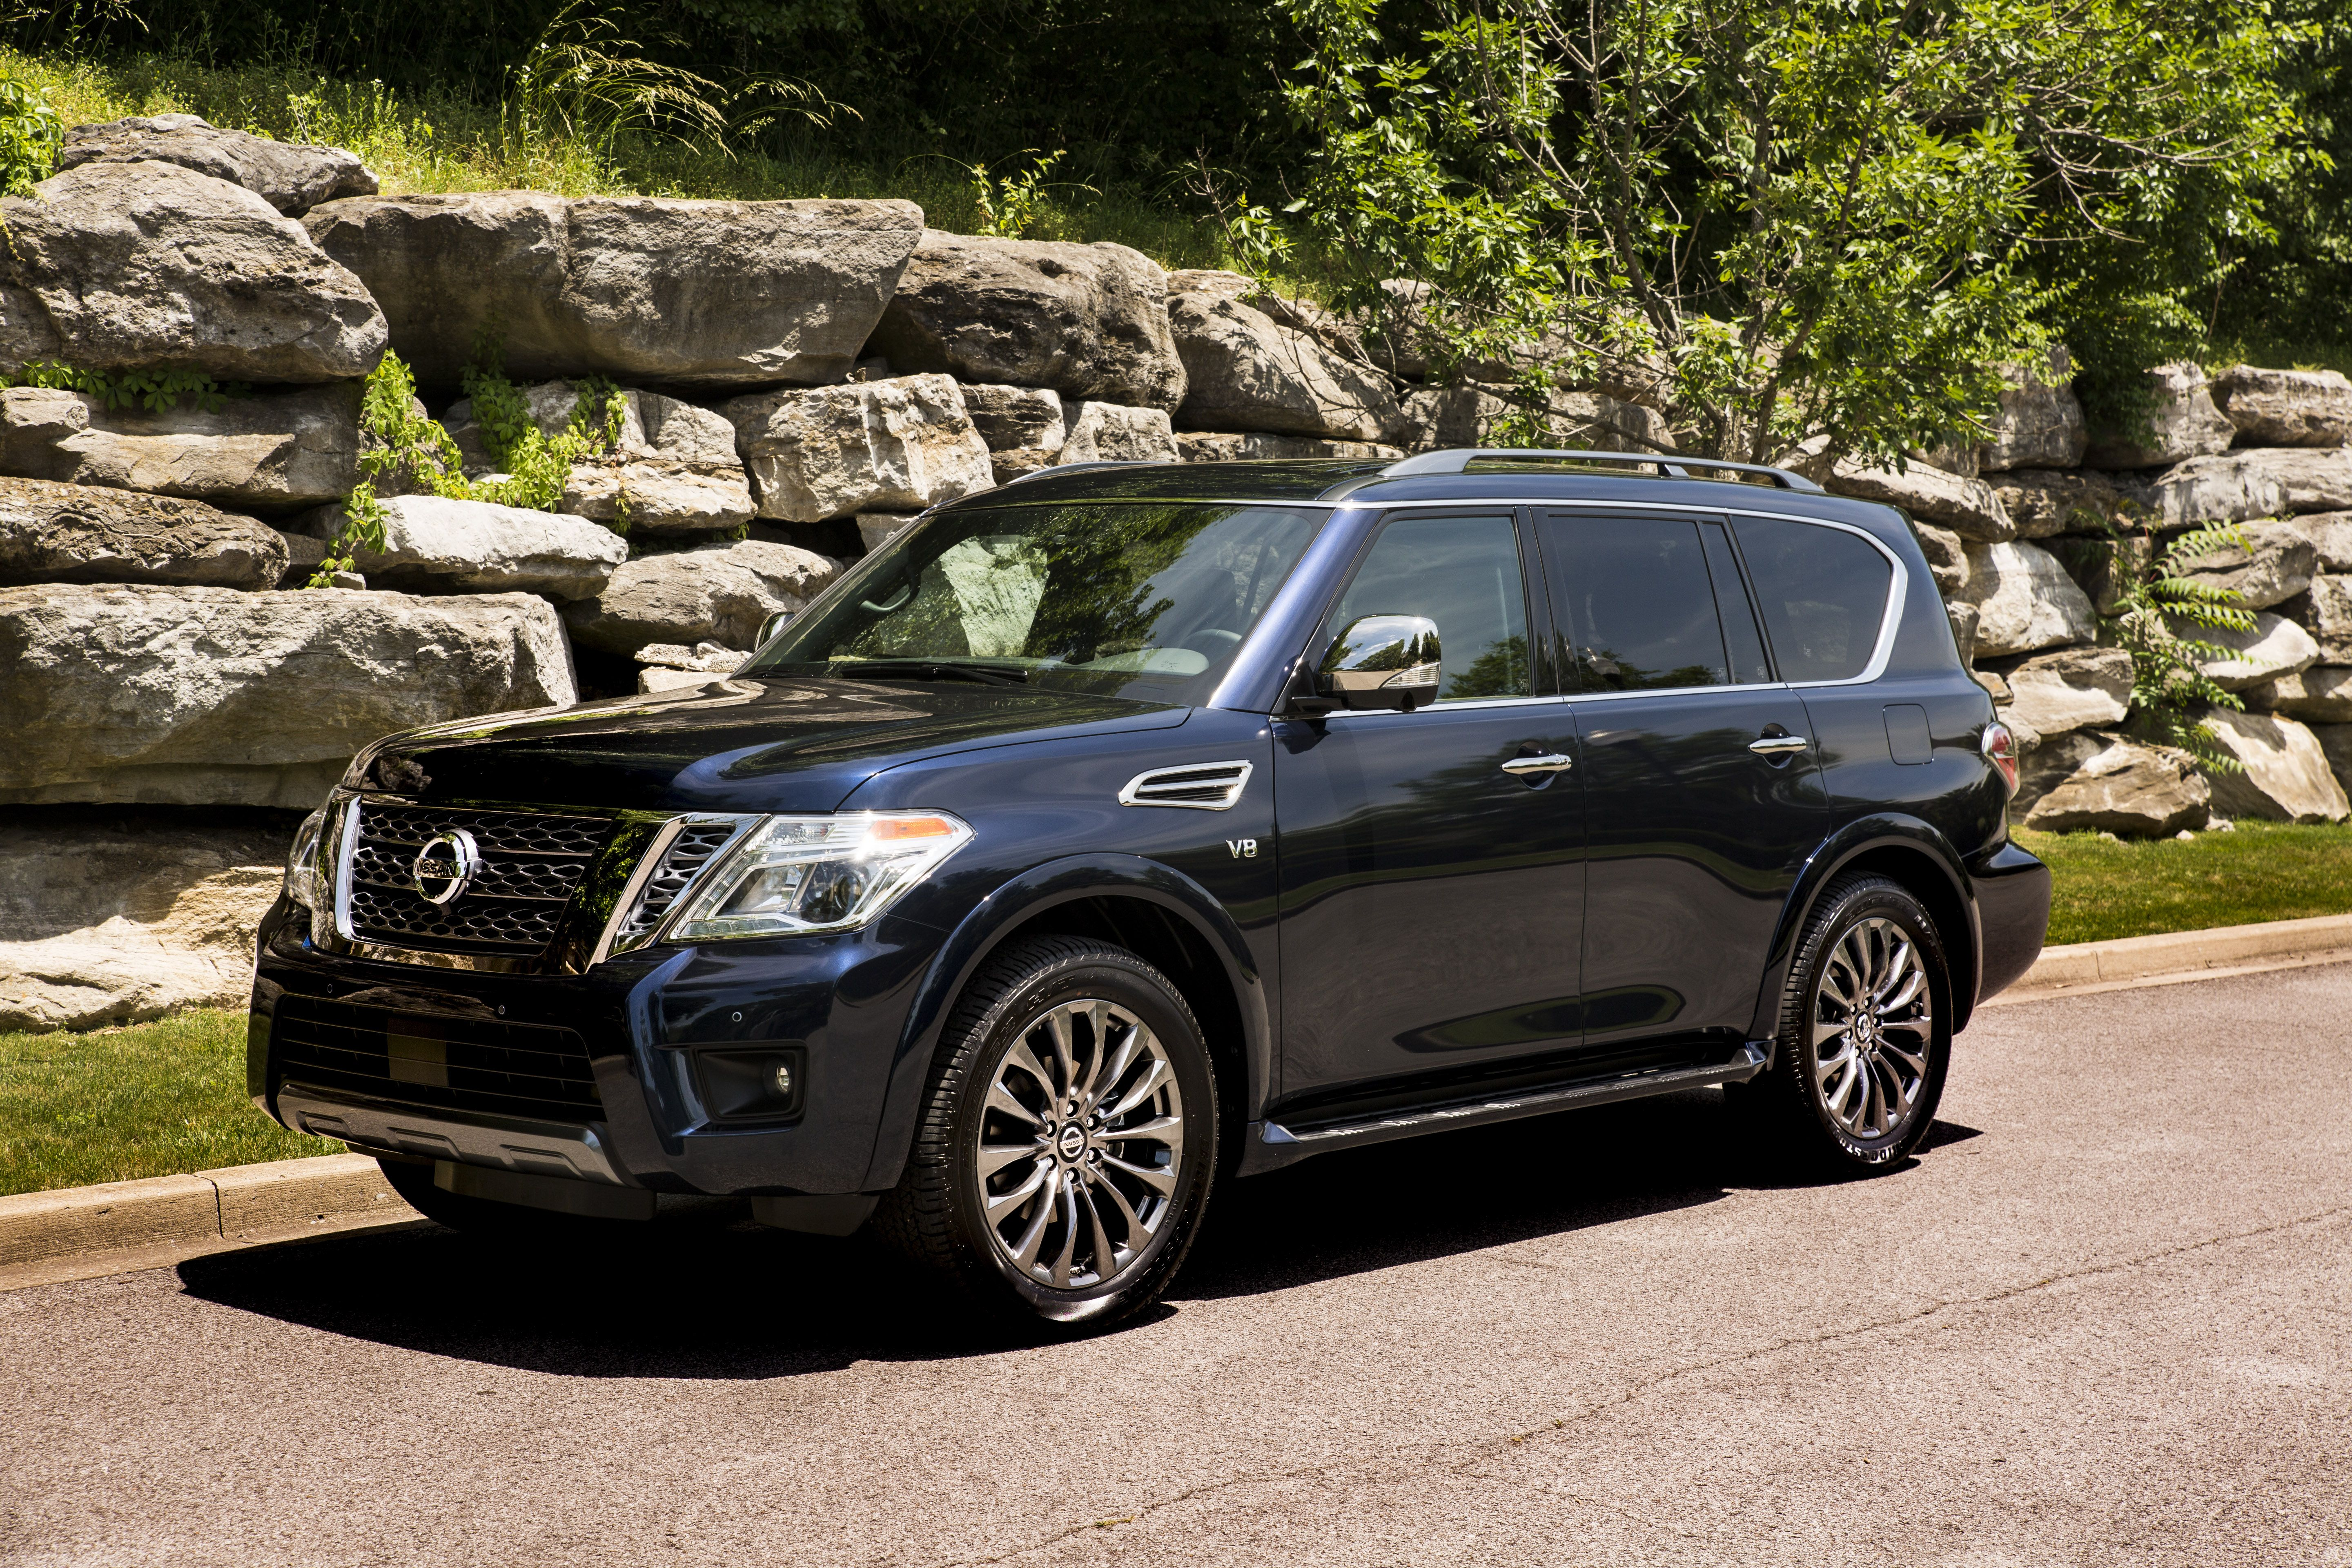 2017 2020 Nissan Armada Review Specifications And Pictures Top Speed In 2020 Nissan Armada Nissan Armada